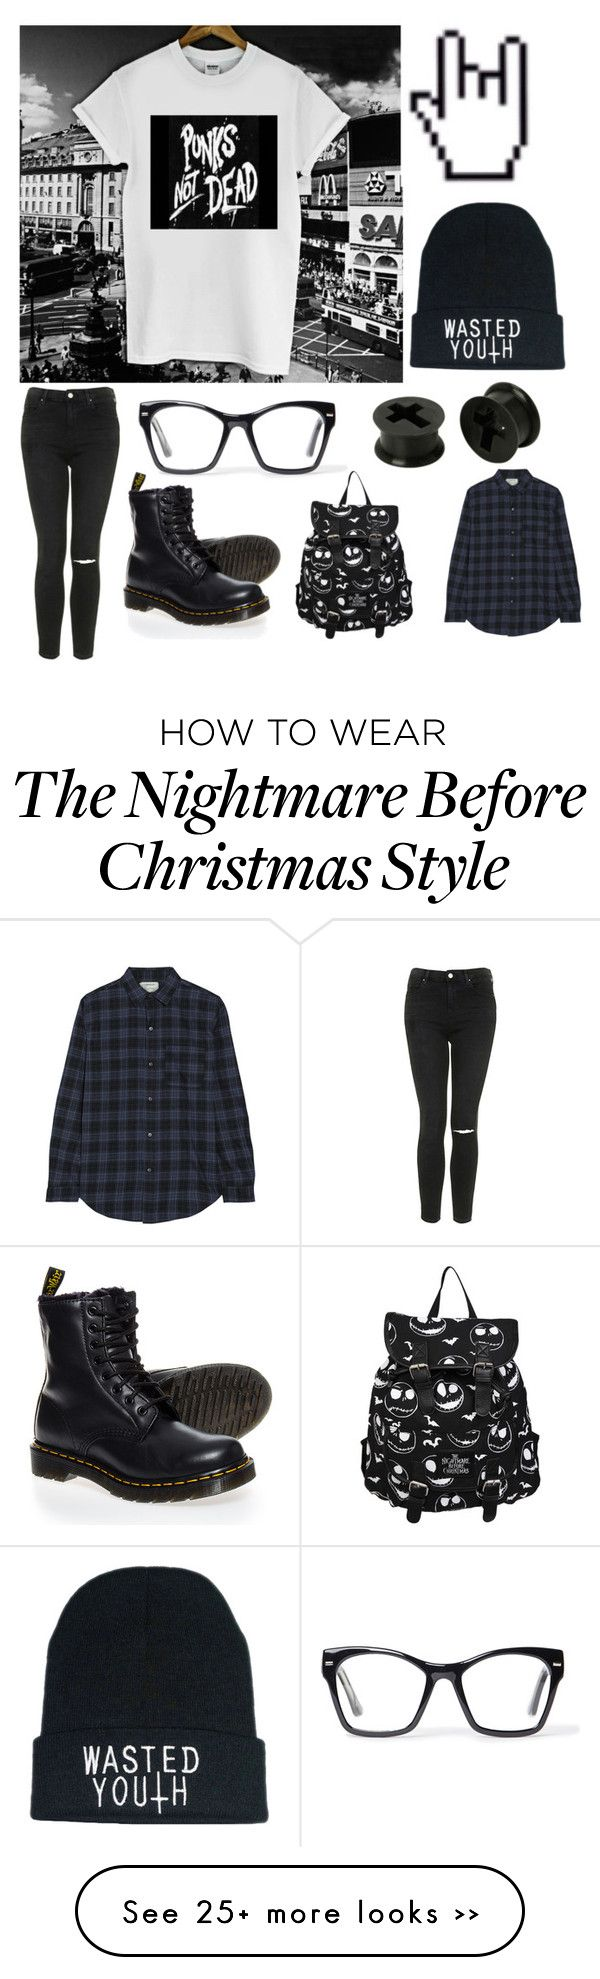 """""""Contest"""" by worthlesschild on Polyvore featuring Topshop, Spitfire, Dr. Martens and Current/Elliott"""